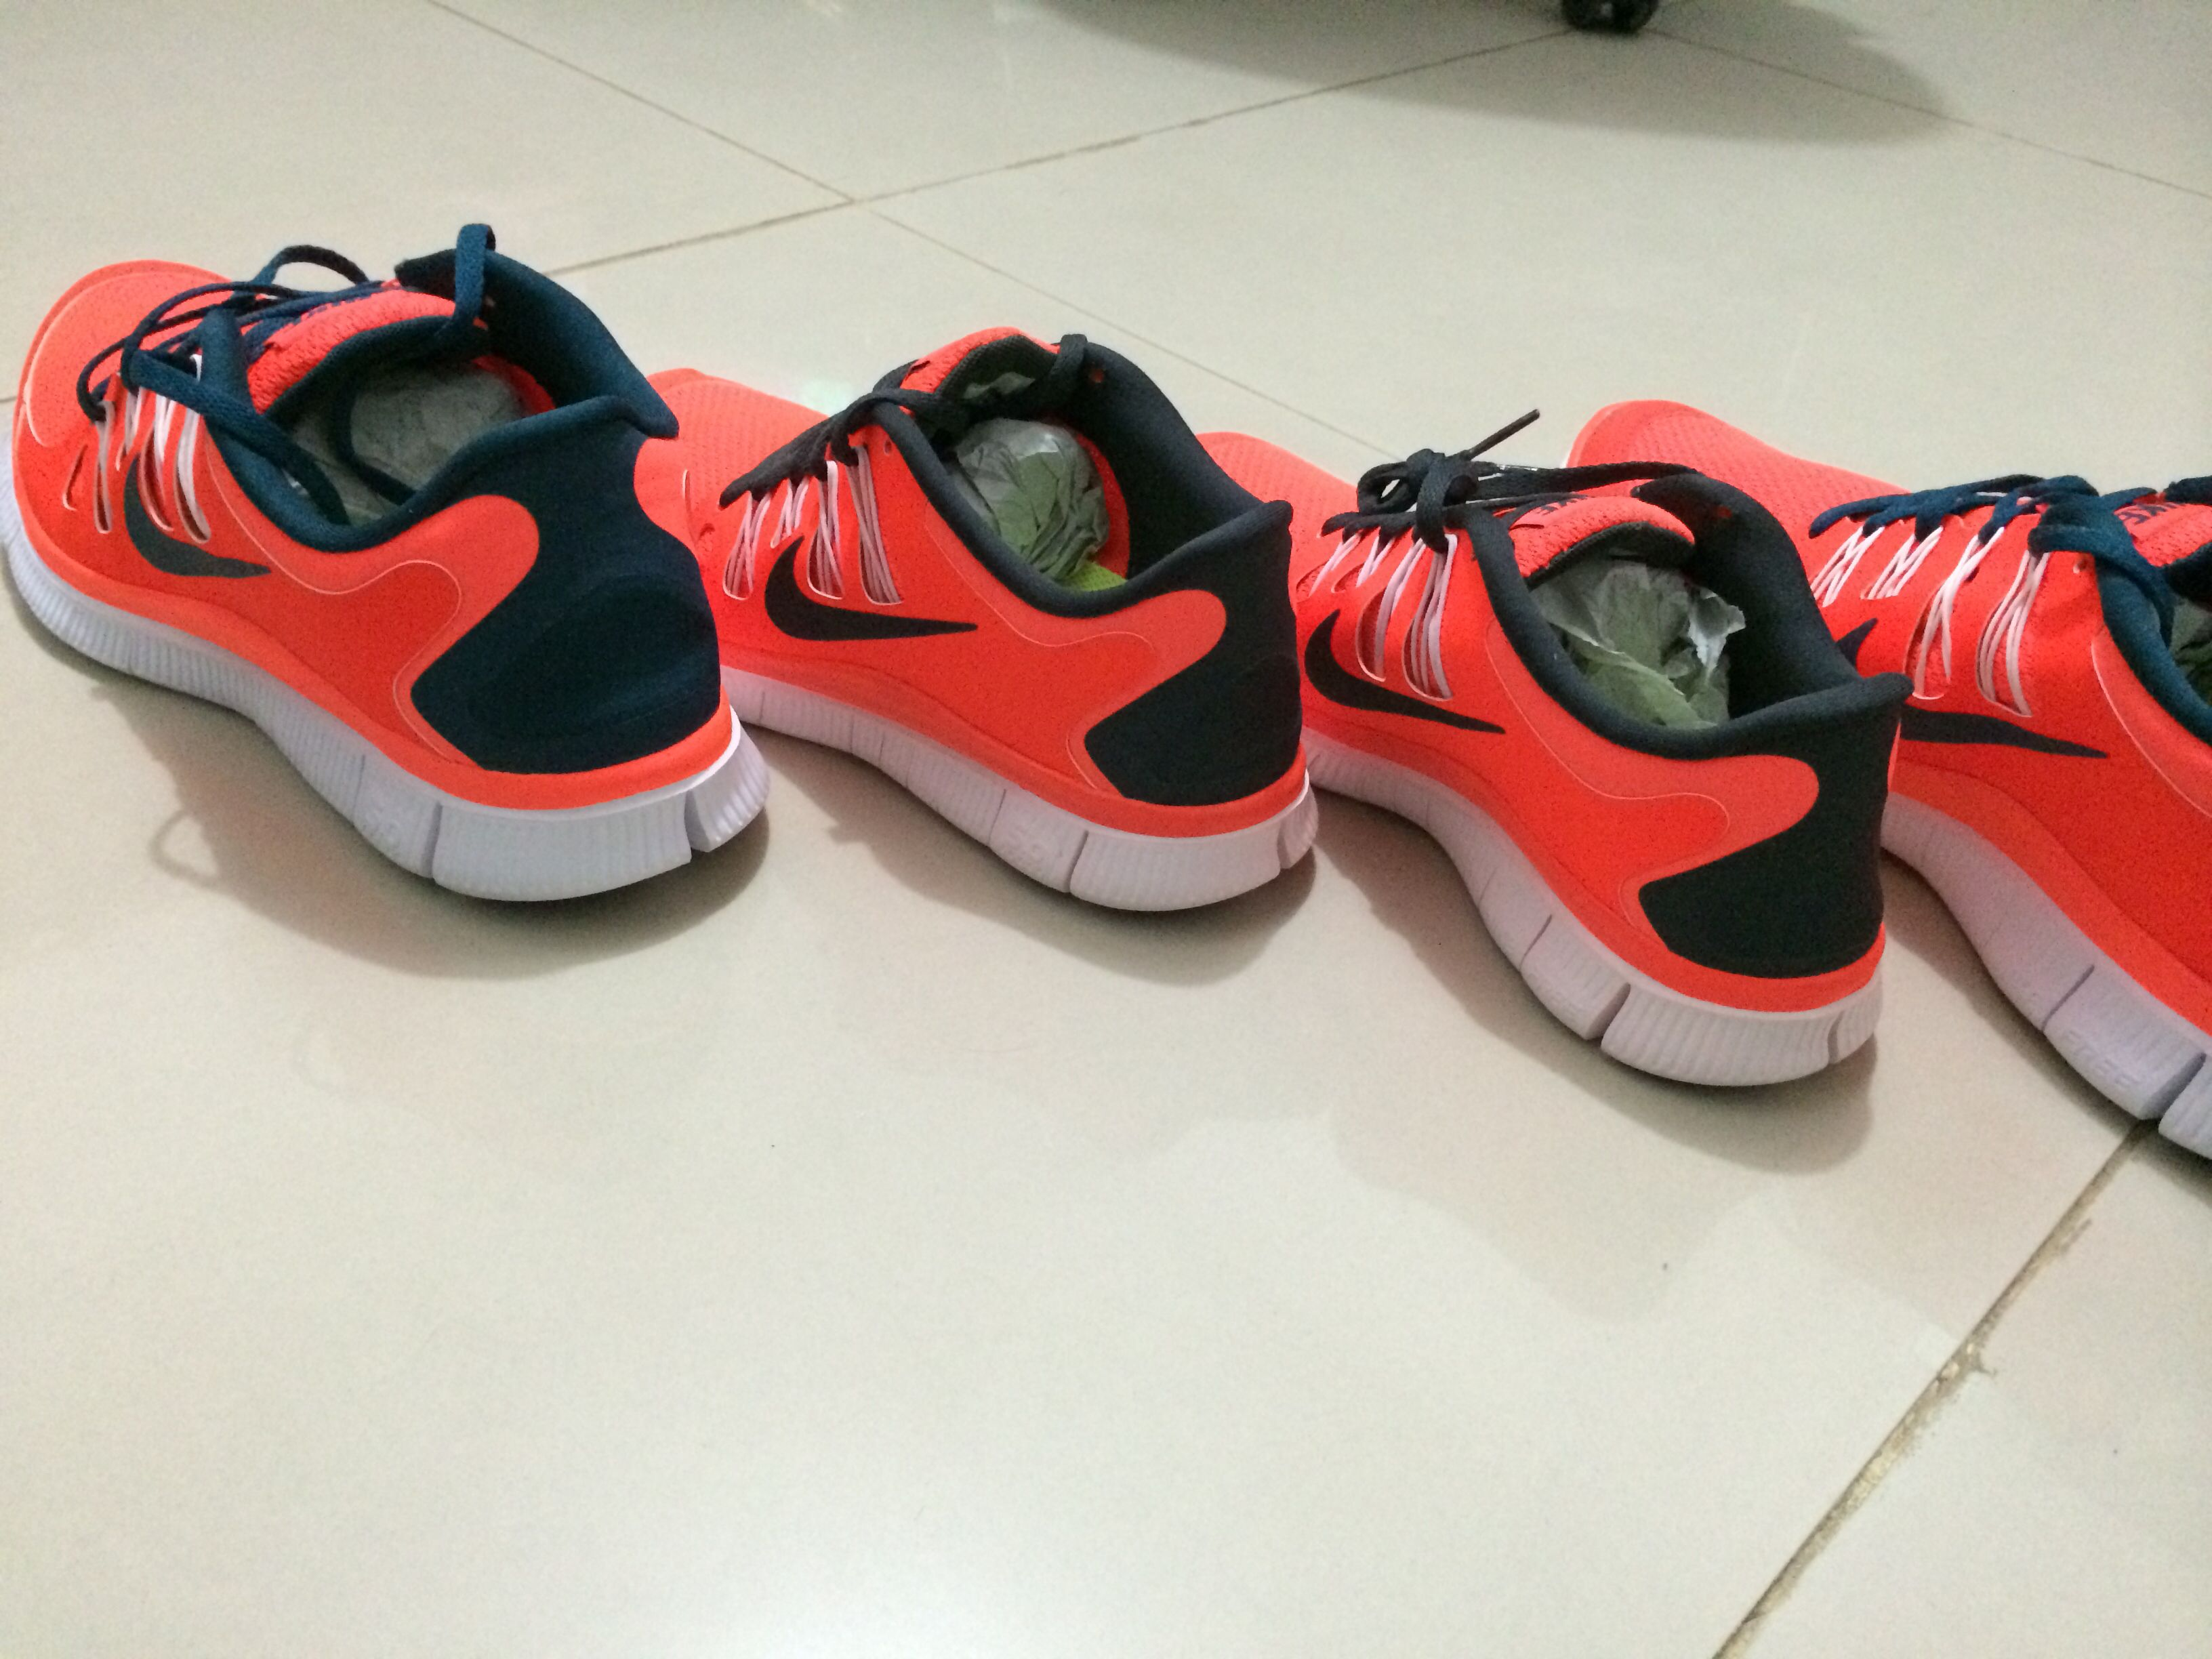 Couple sport Chaussure s nike nike nike running yc's fave   Shoes 4aca33